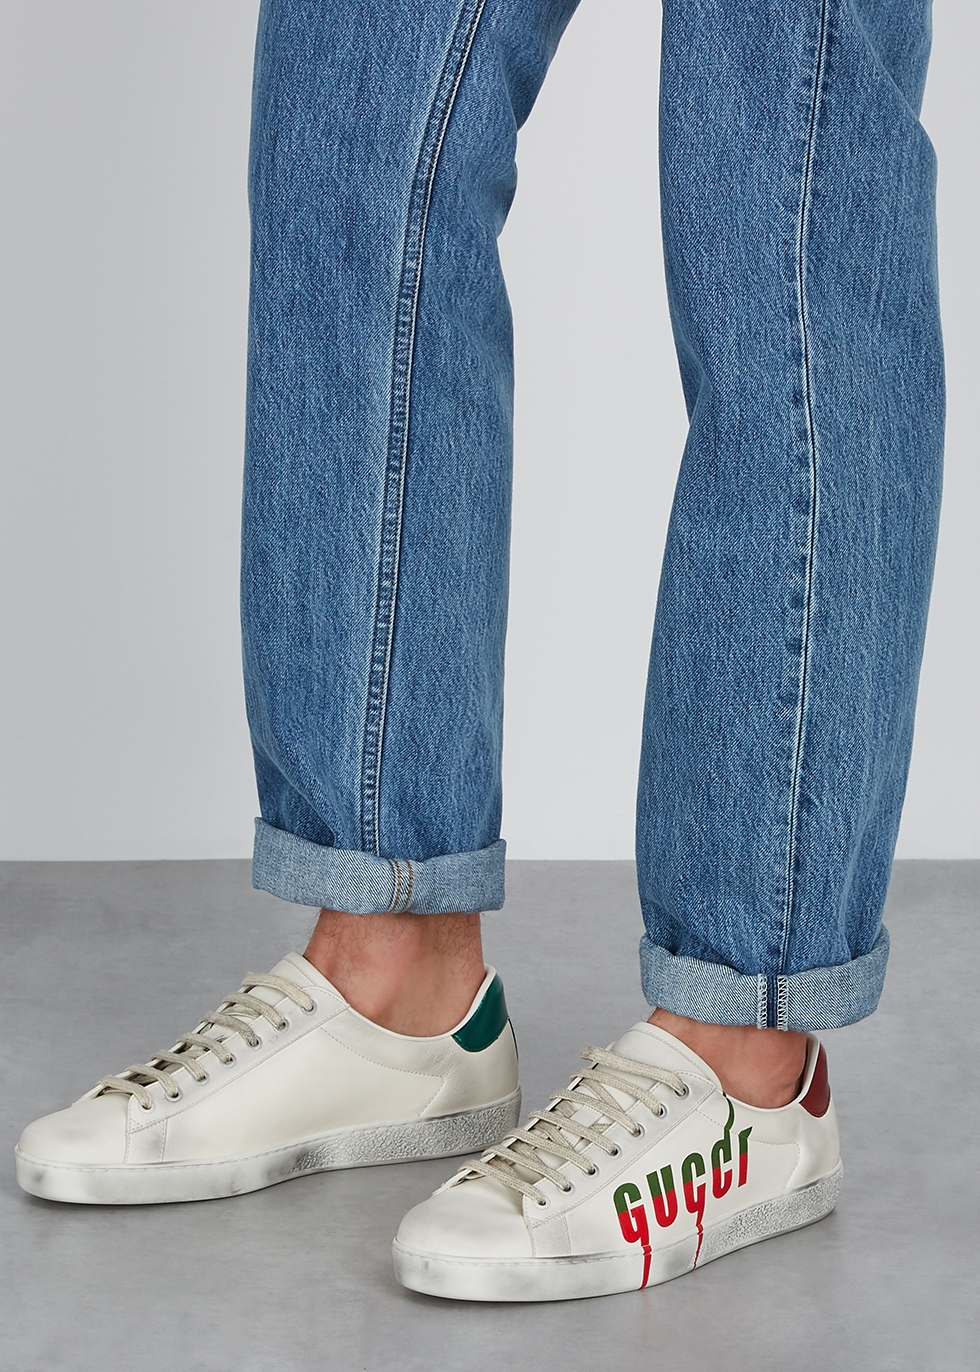 Gucci Ace white logo leather sneakers